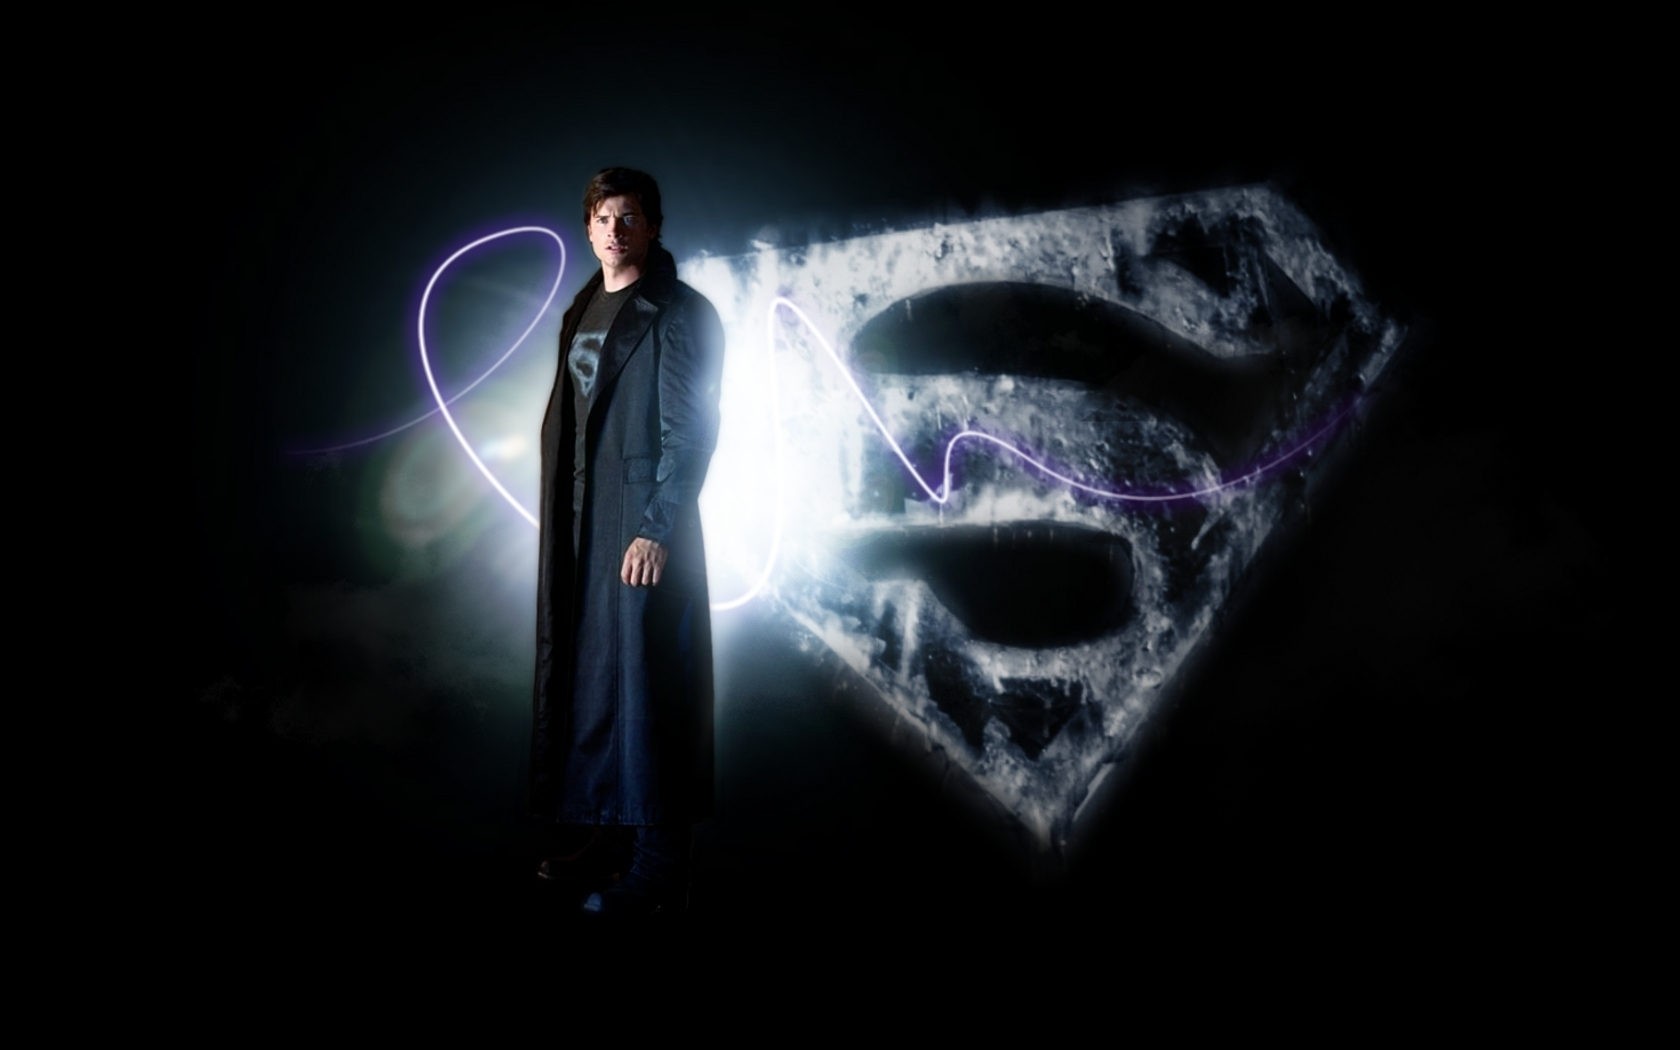 smallville smallville wallpaper 13895891 fanpop